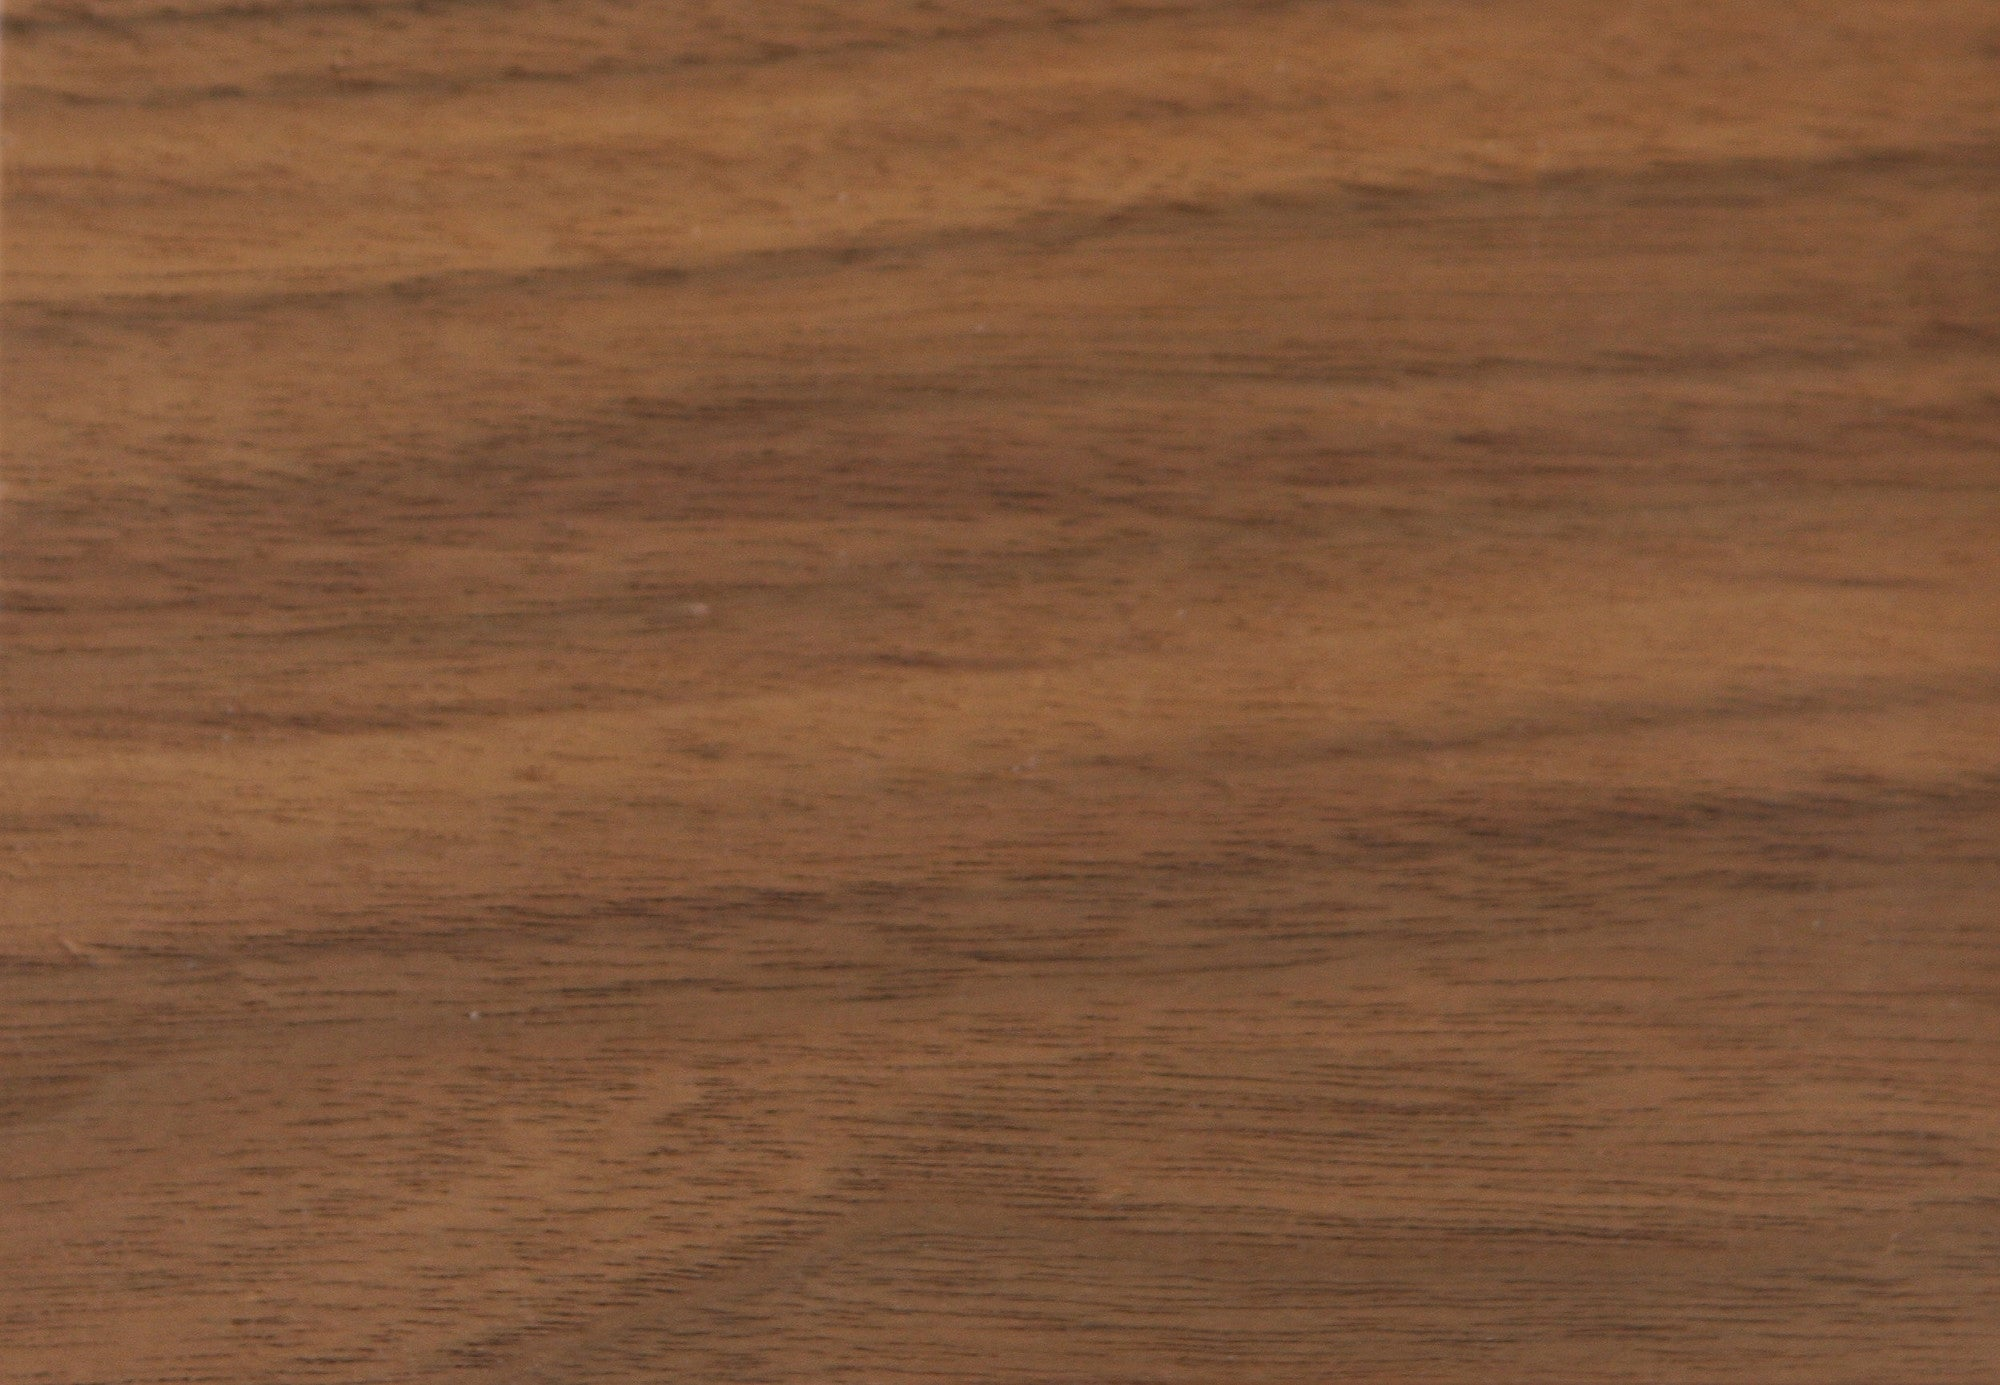 Walnut Finish Samples – Mortise & Tenon